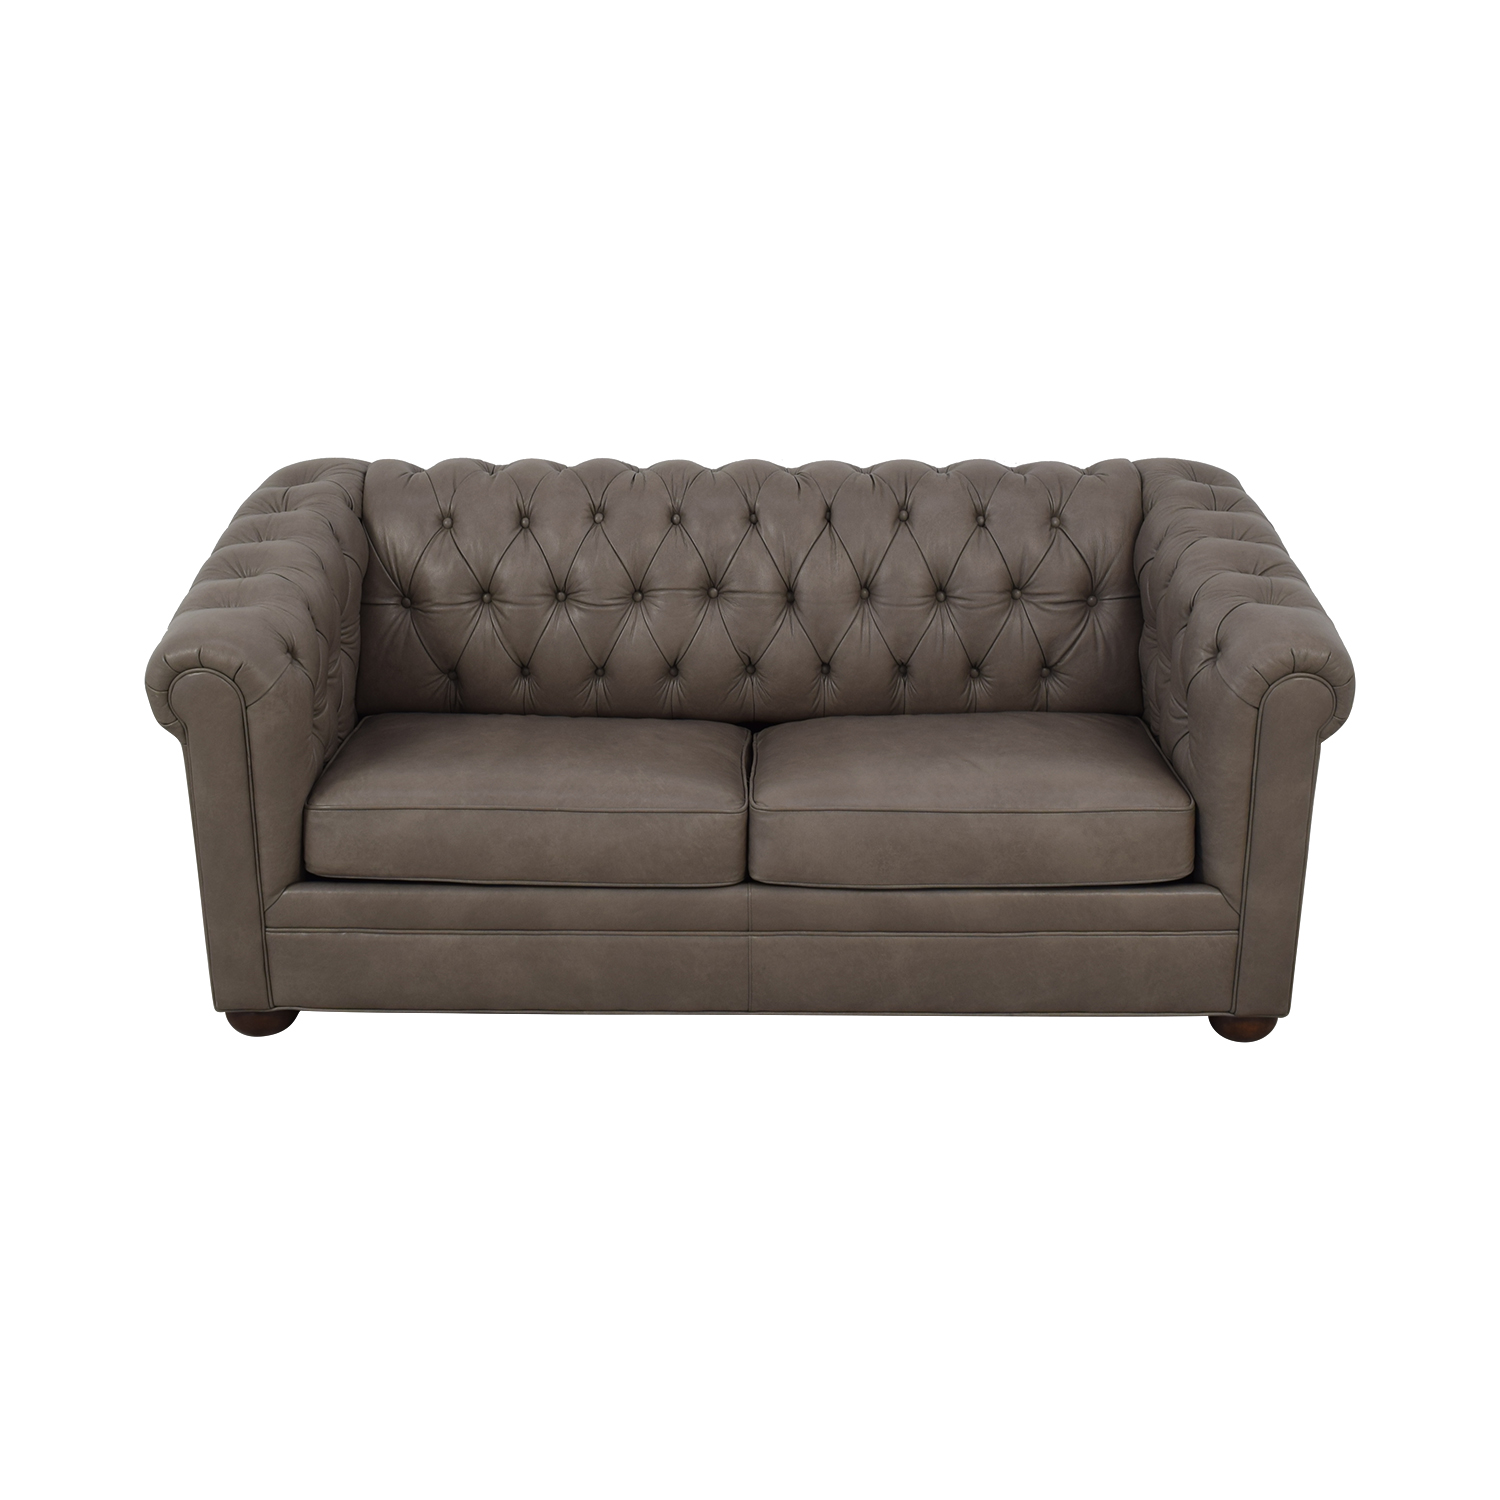 Club Furniture Club Furniture Leather Chesterfield Sleeper Sofa for sale